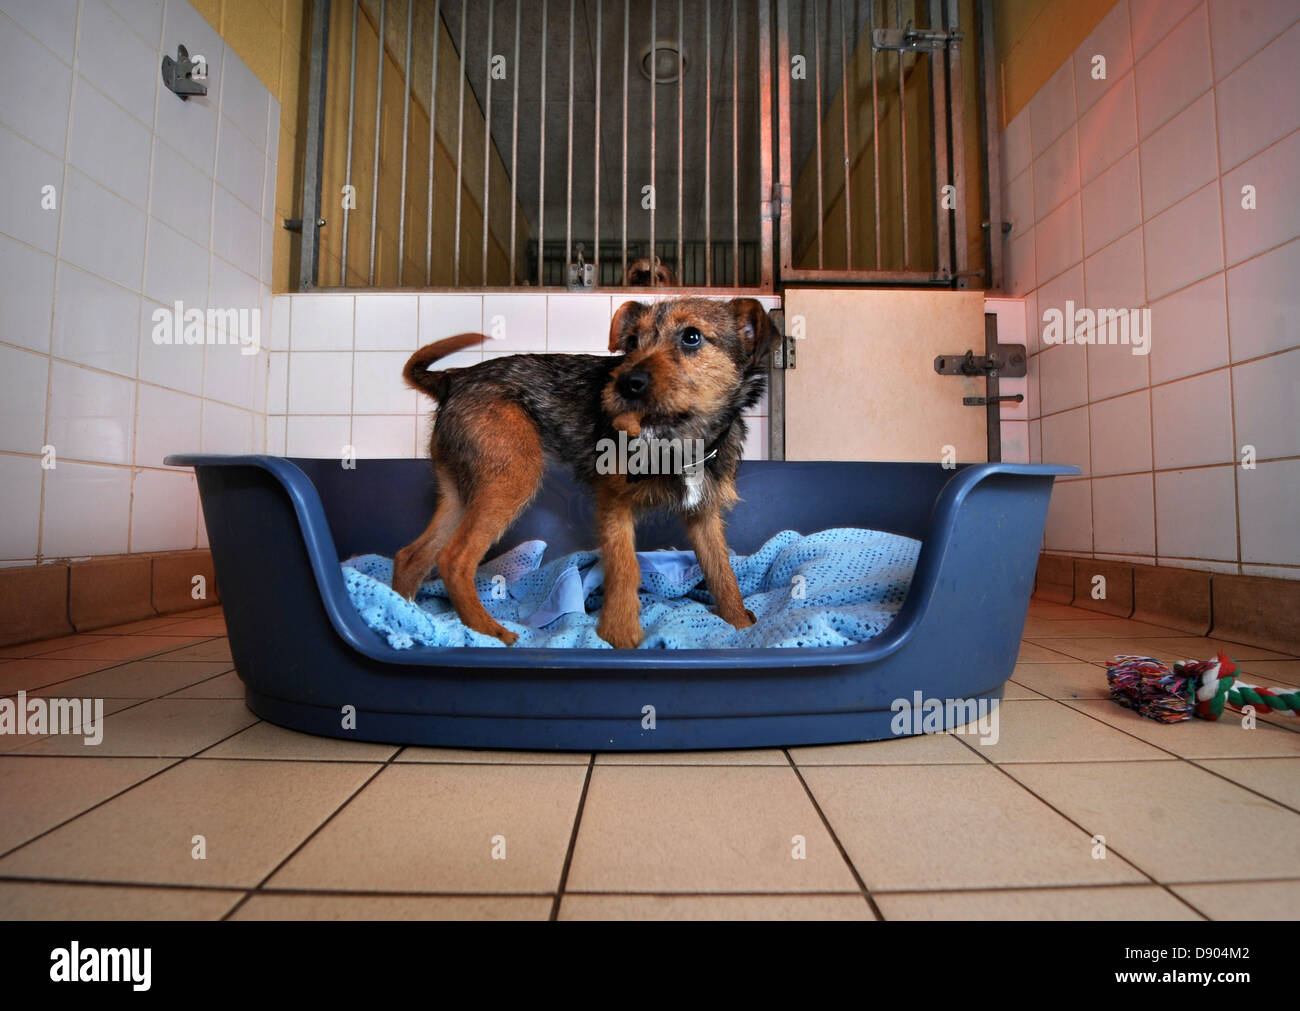 A rescued dog at the Dogs Trust near Bridgend, S. Wales 4 Dec 2009 UK - Stock Image